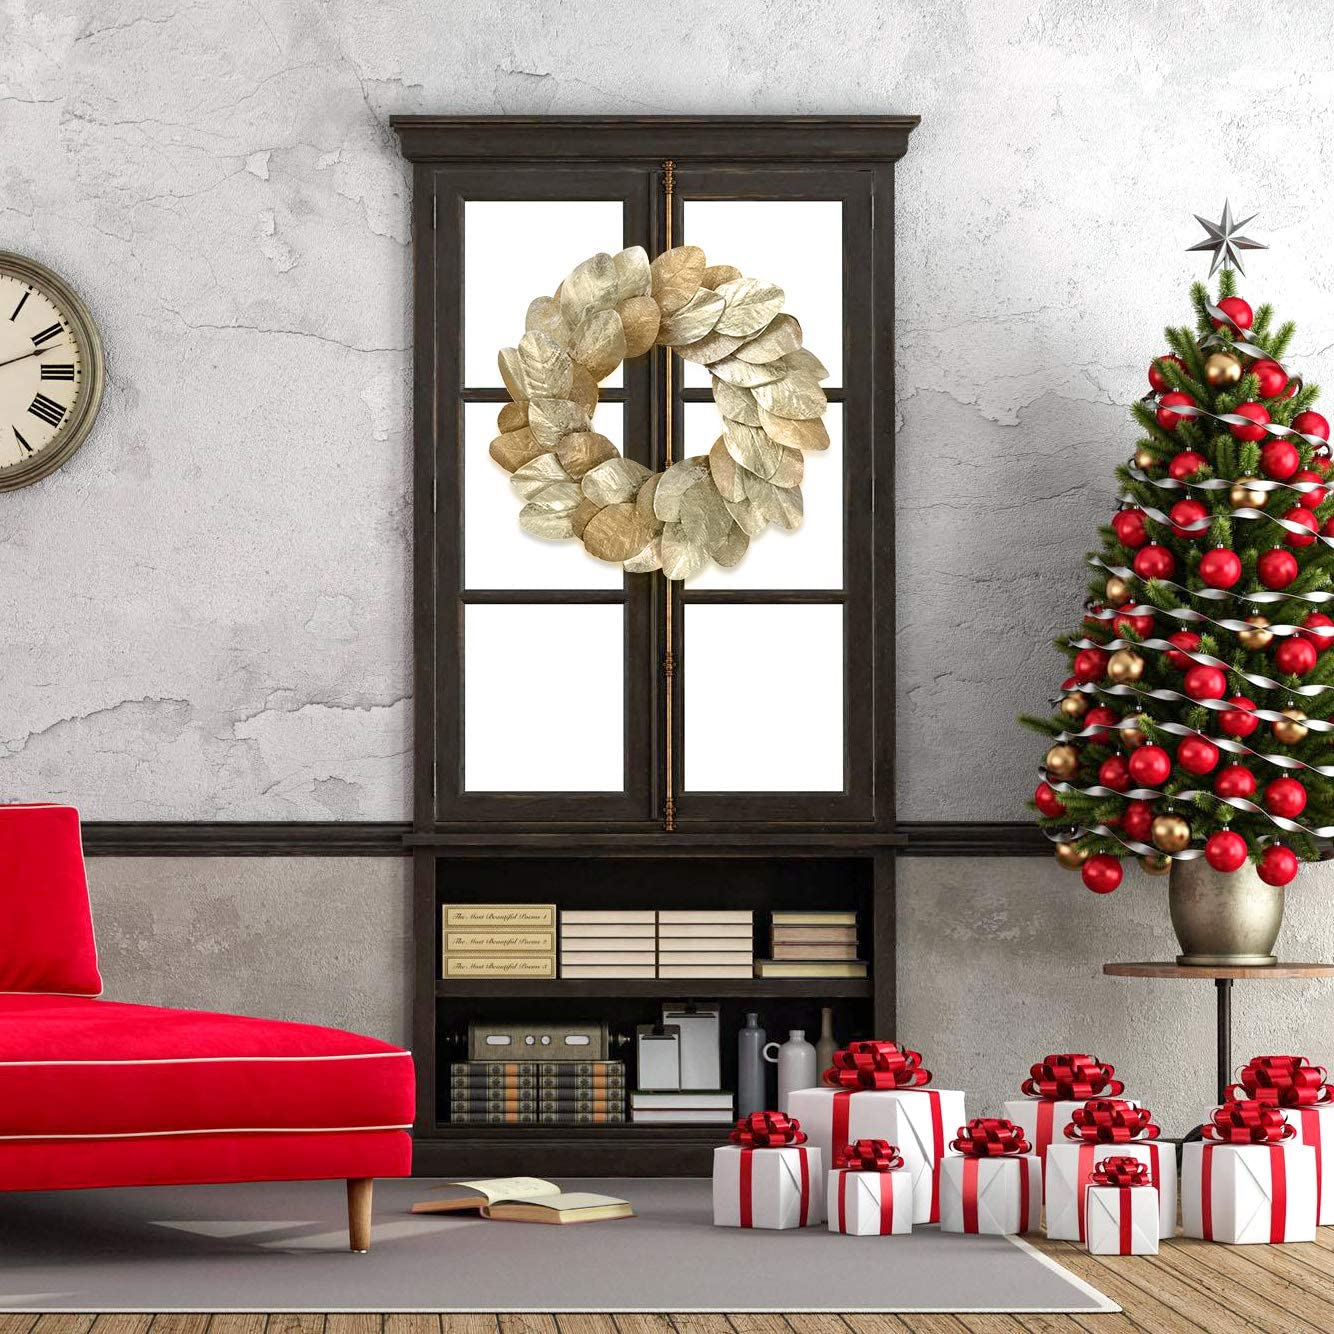 Holiday 20 Inch Home Decor for Indoor Door Wreath Flushed with Eucalyptus Leaves with Red Berry with Pine Needle Decoration YNYLCHMX Artificial Christmas Wreath for Front Door Wall Windows